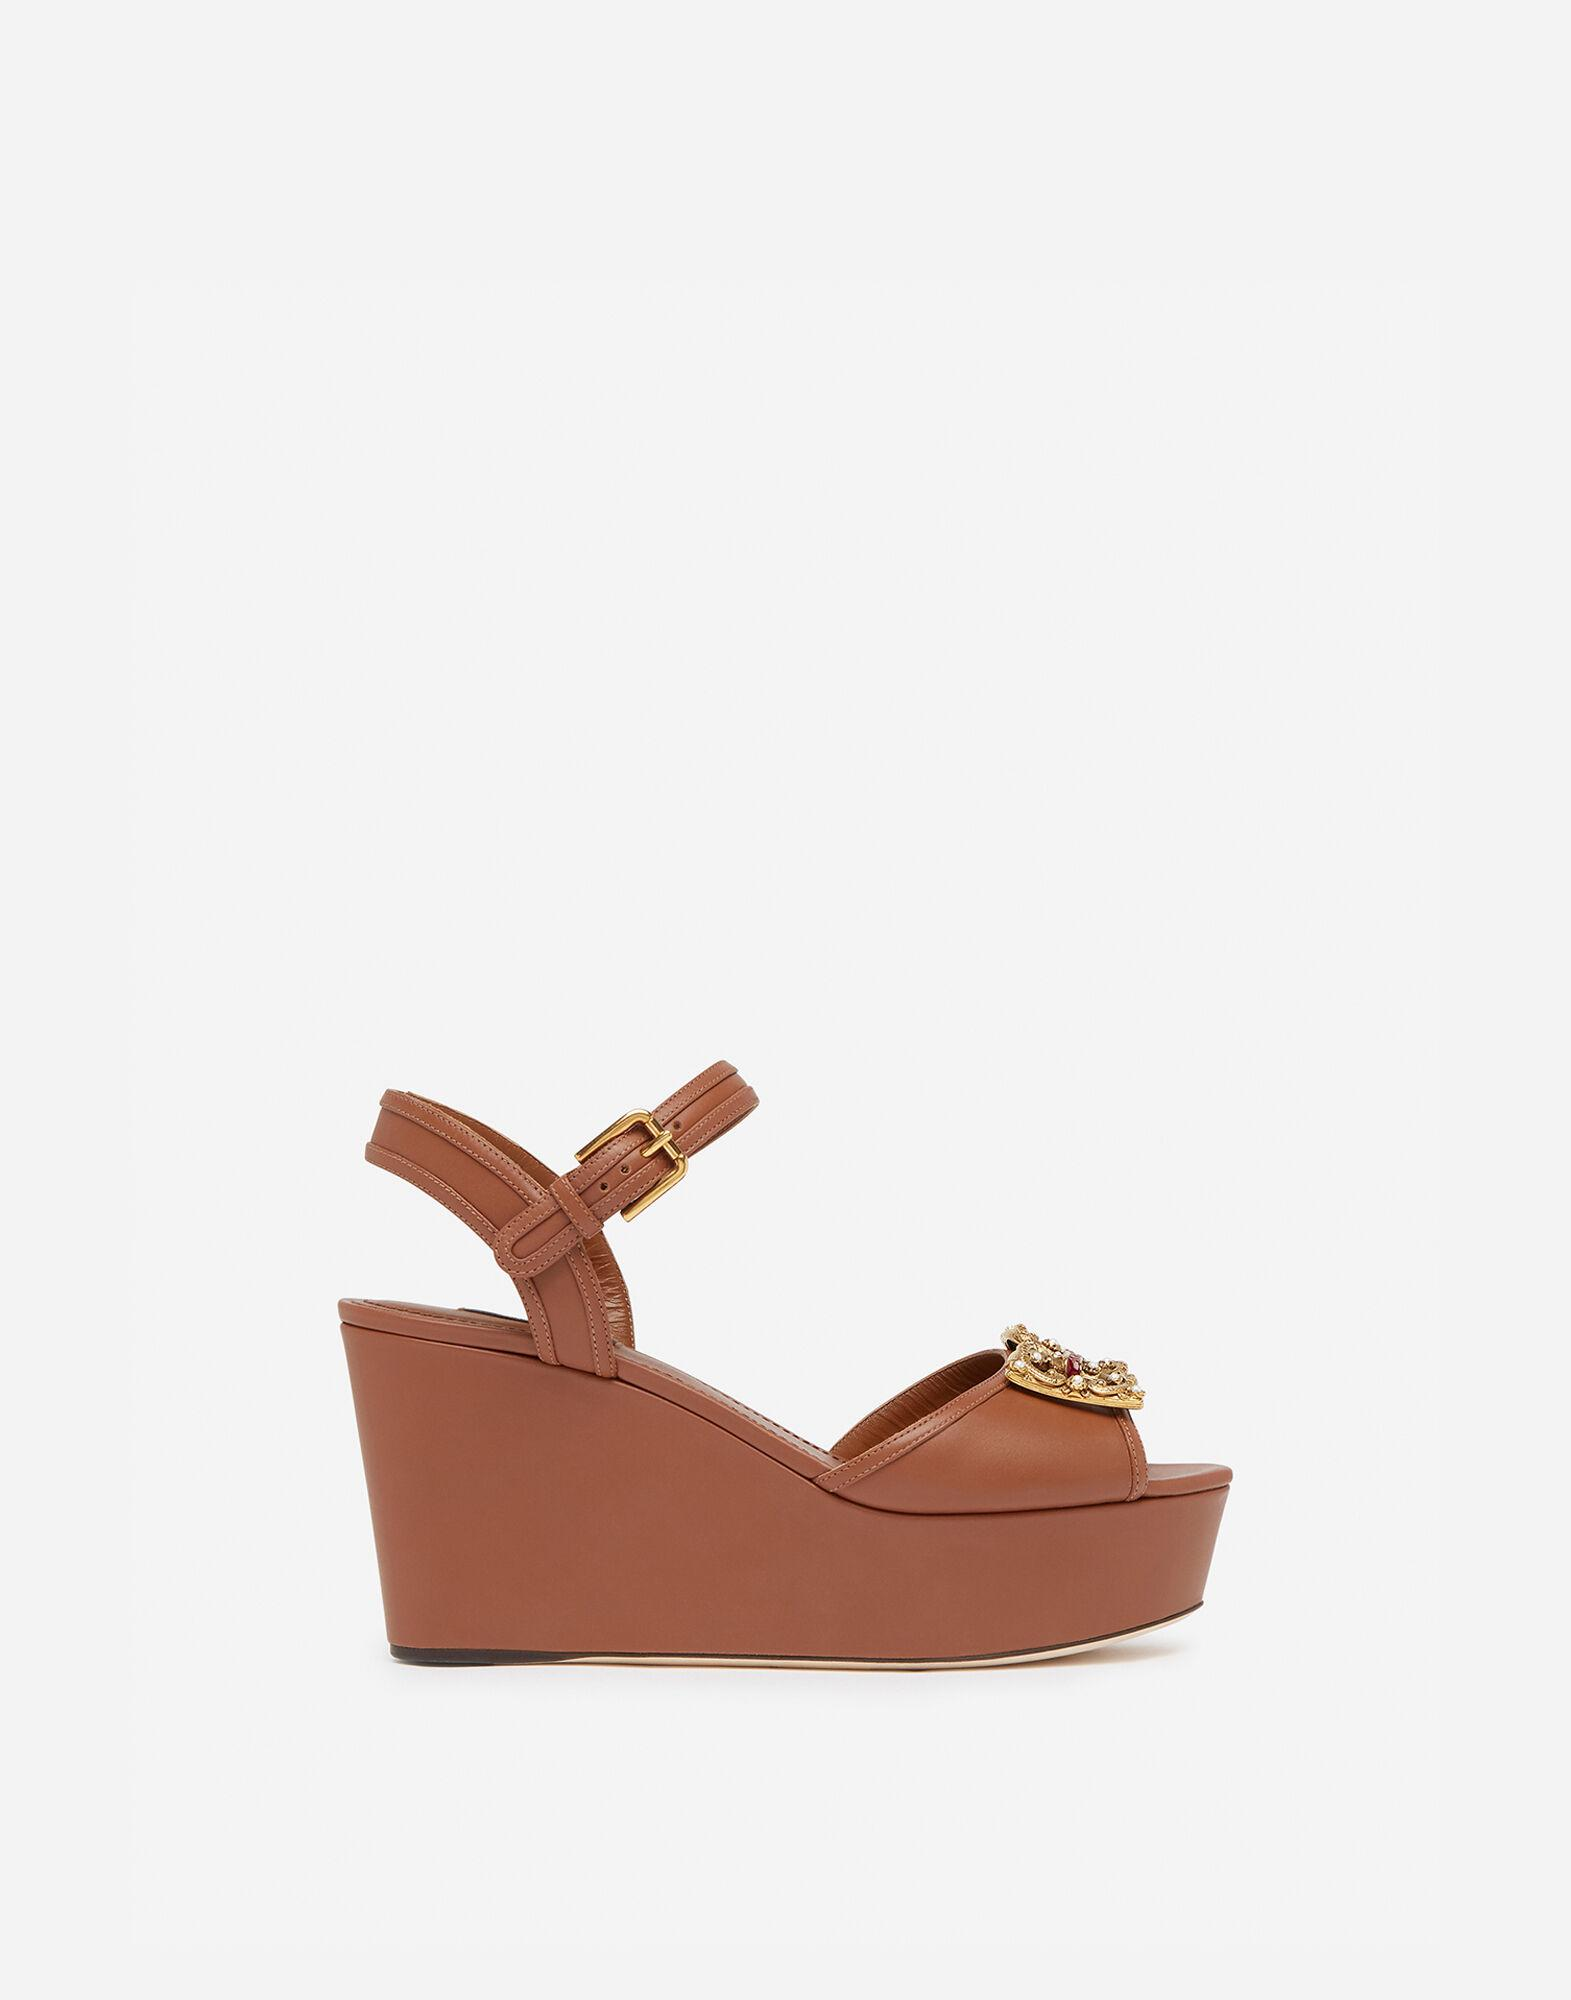 Calfskin wedge sandals with DG Amore logo